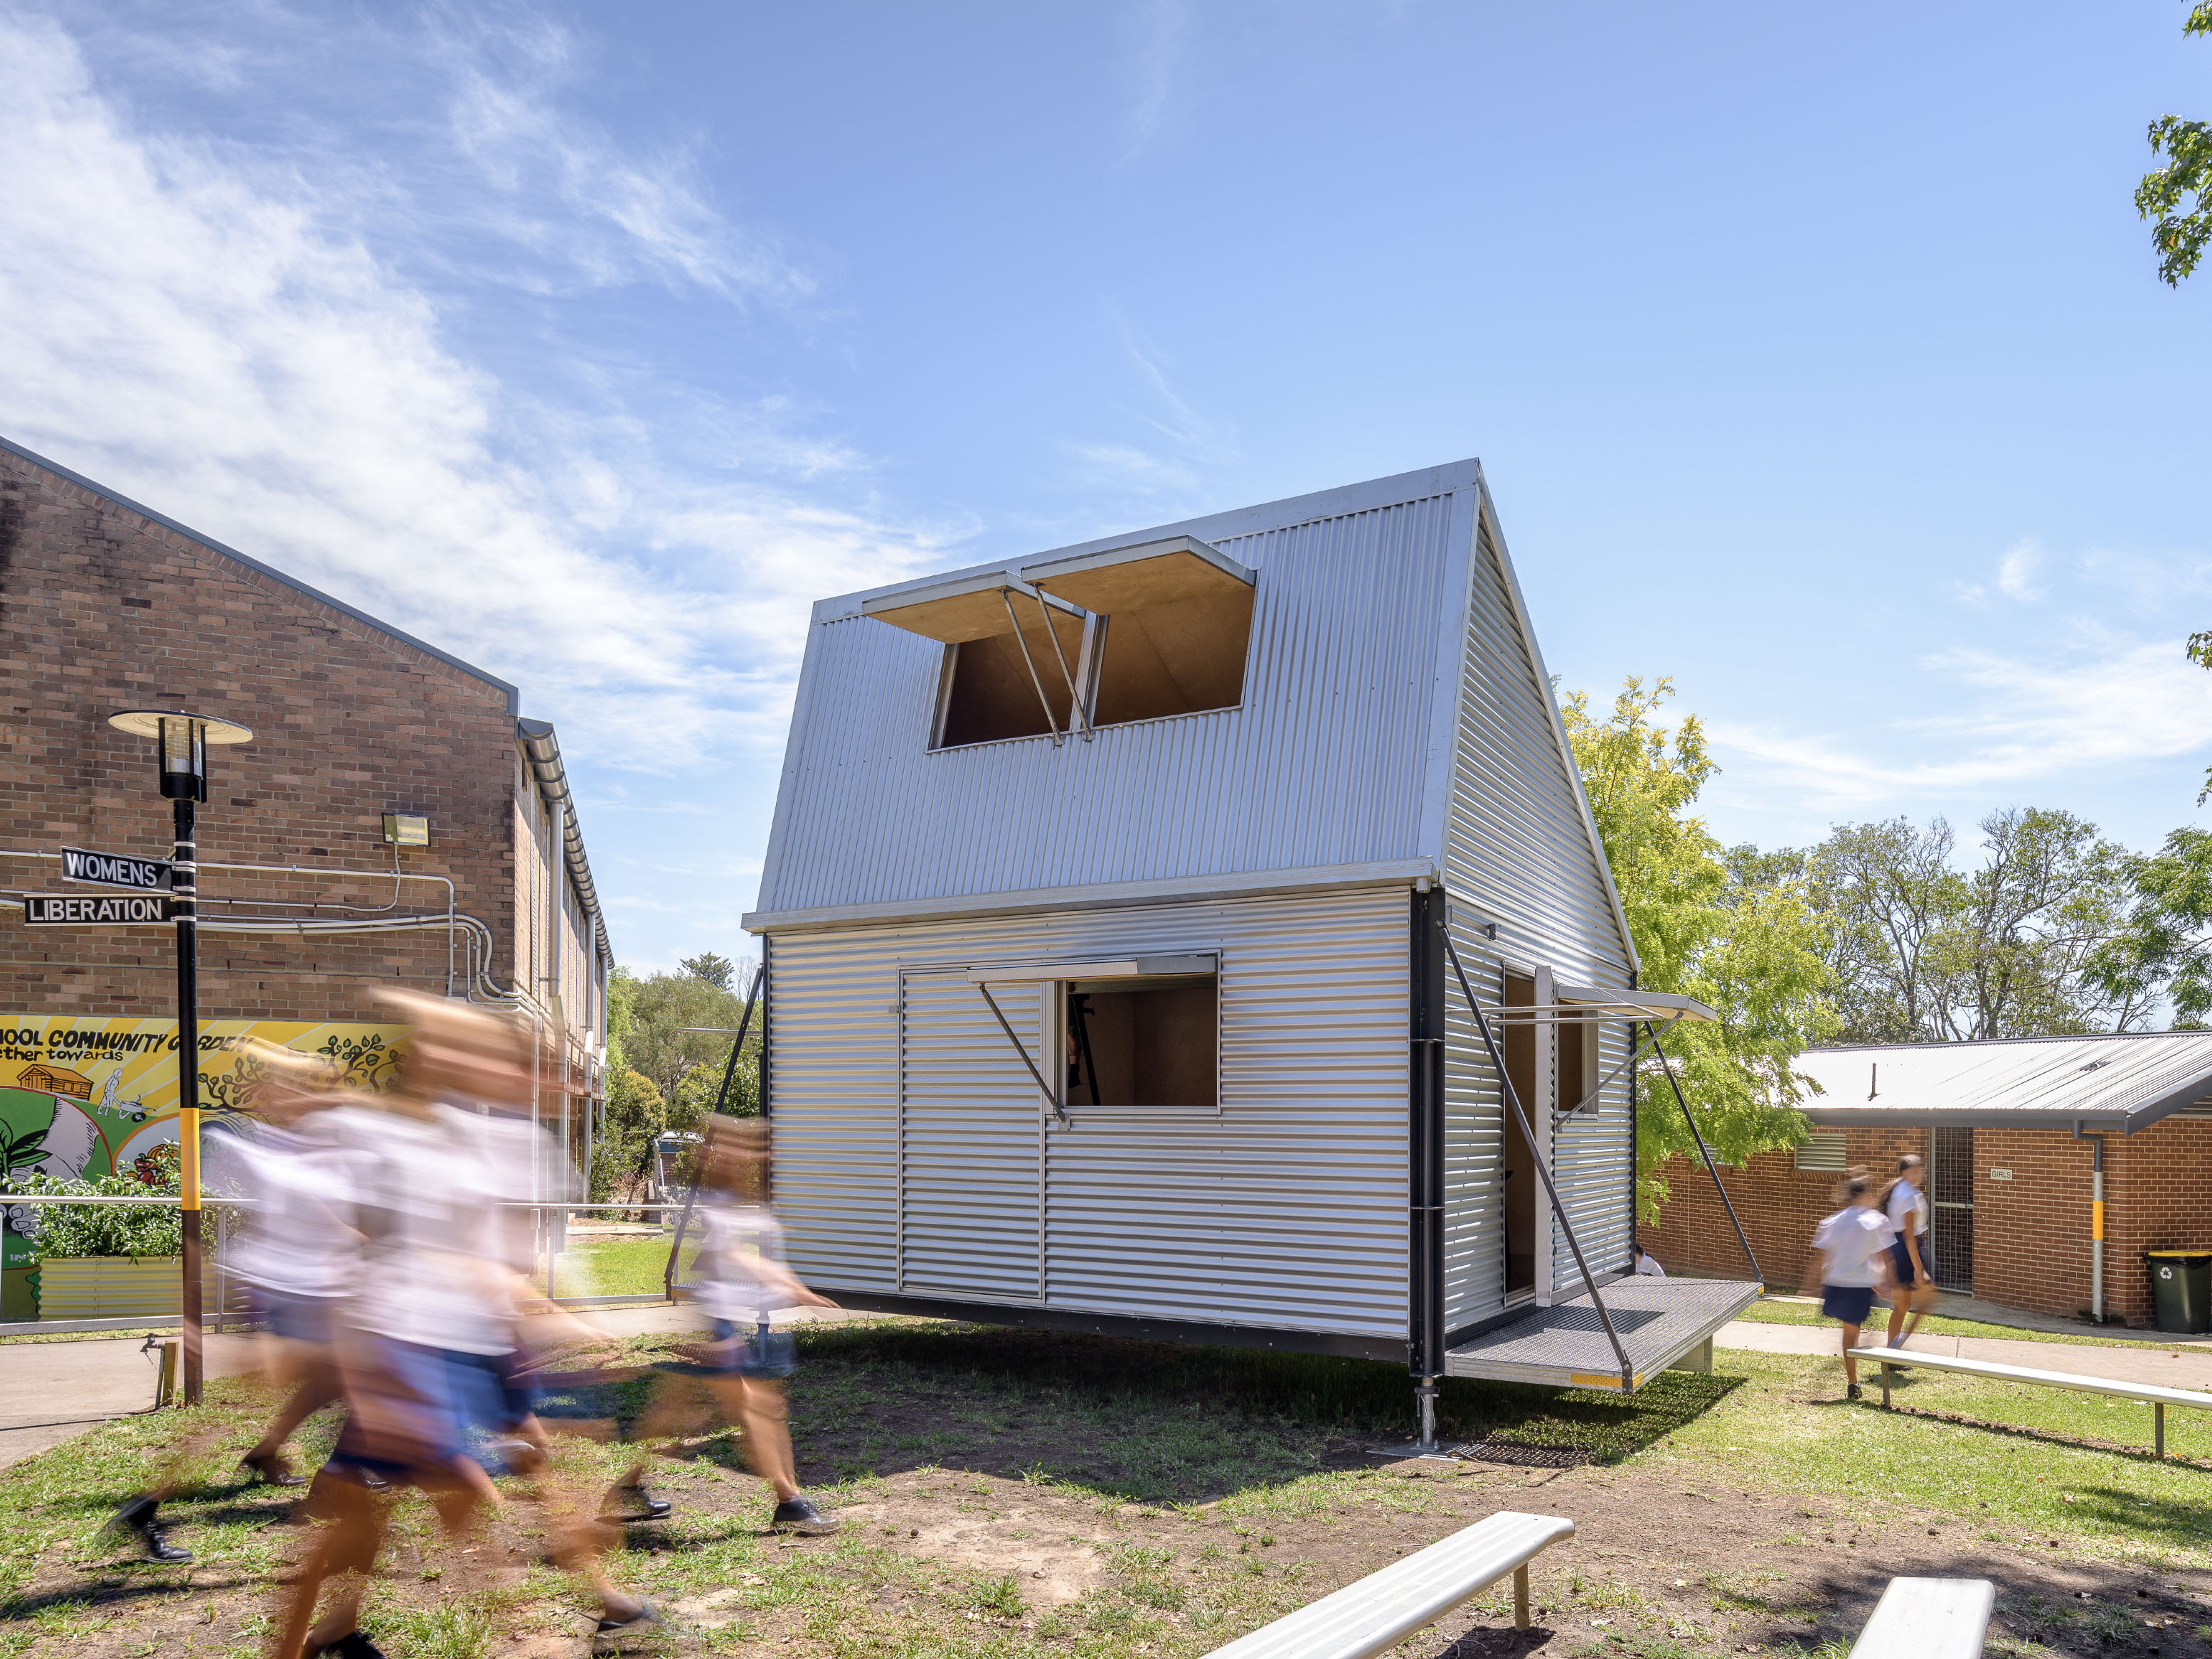 2018 Sustainability Awards finalist: Sustainable House